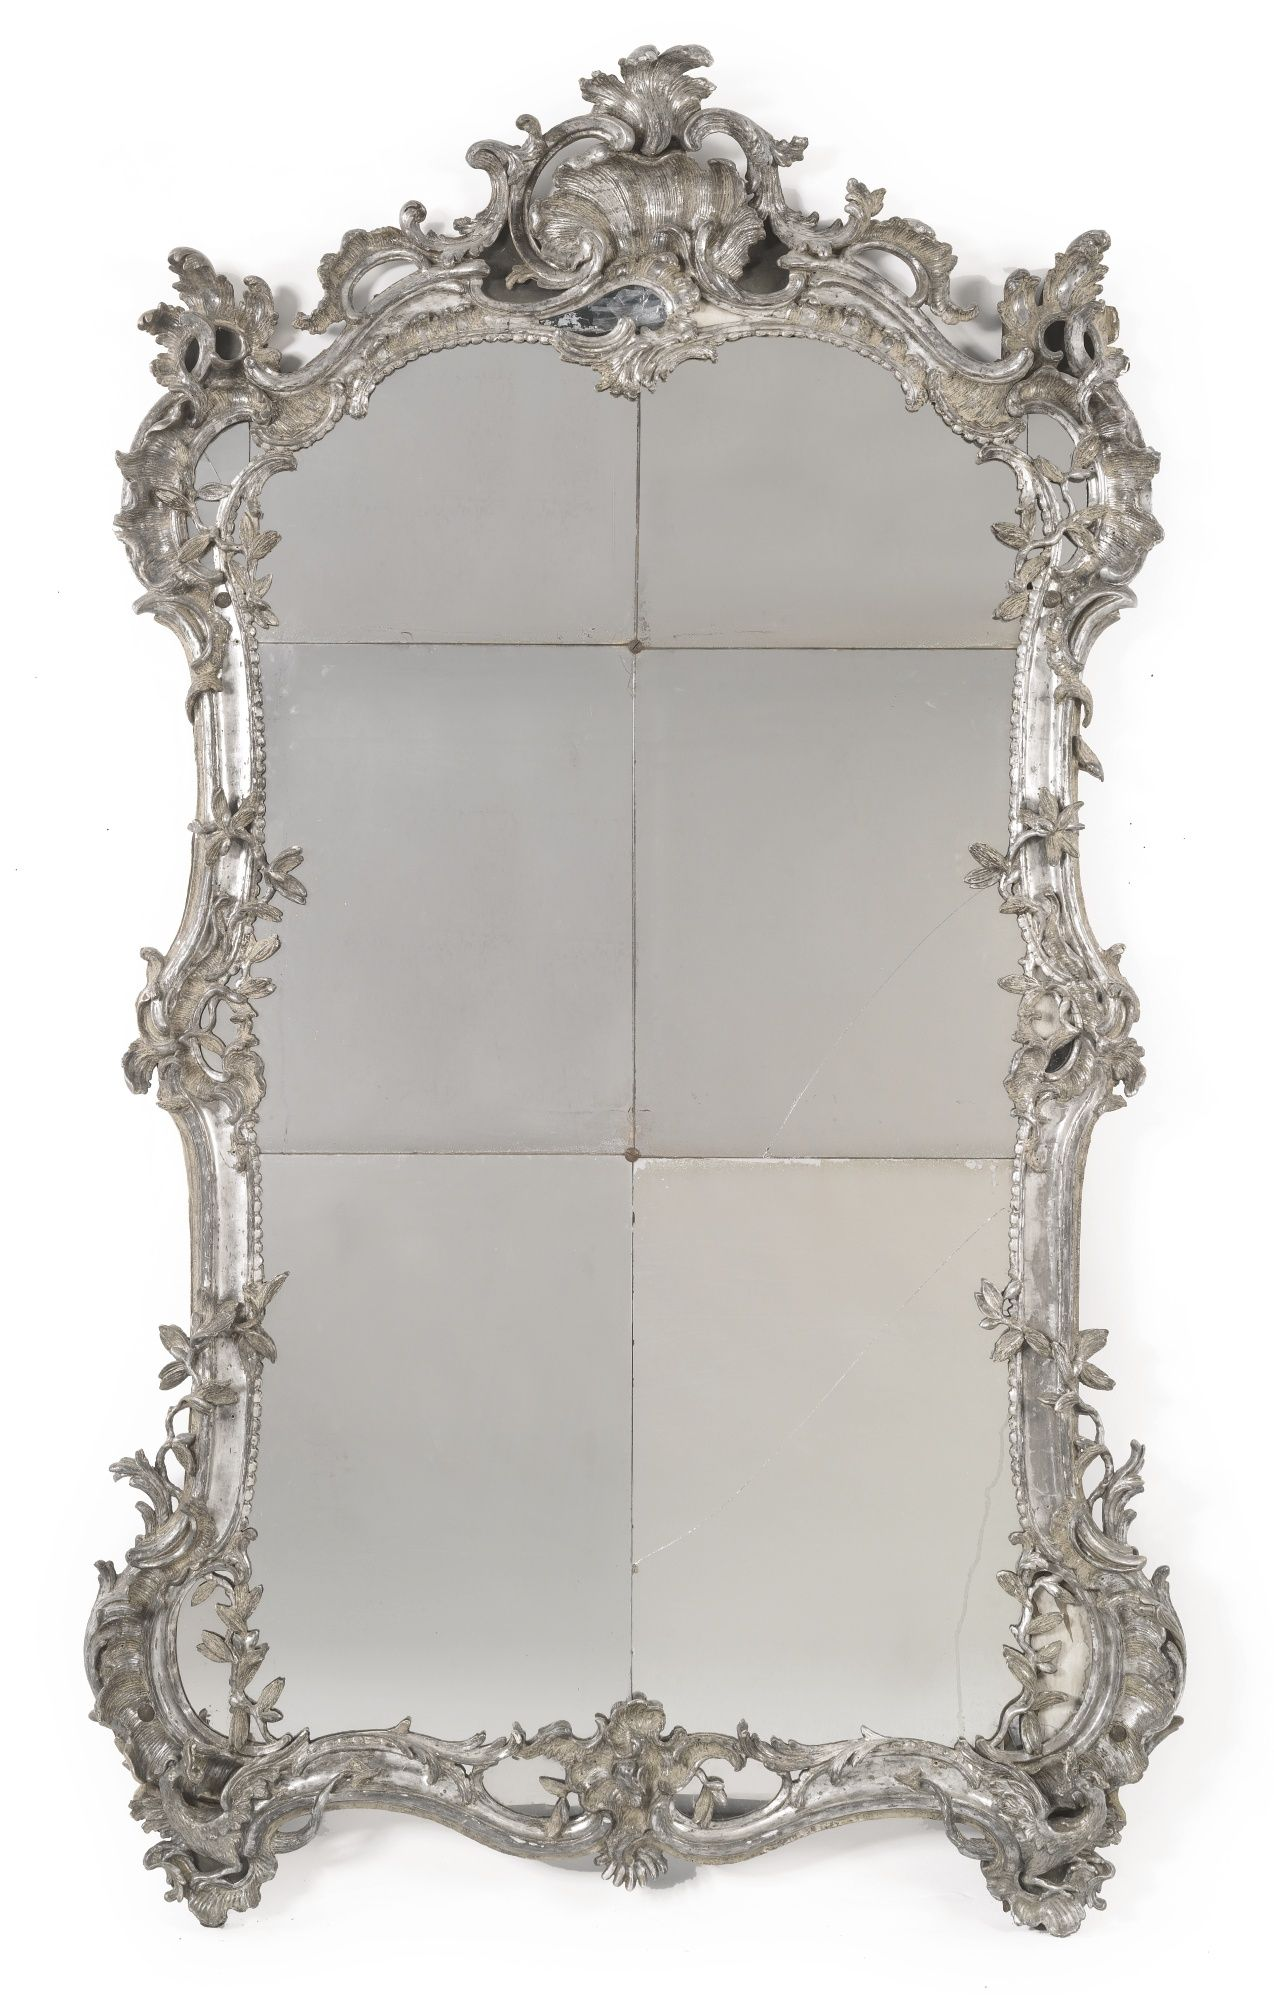 A large german rococo carved and silvered mirror mid 18th century a large german rococo carved and silvered mirror mid 18th century lot sothebys amipublicfo Images